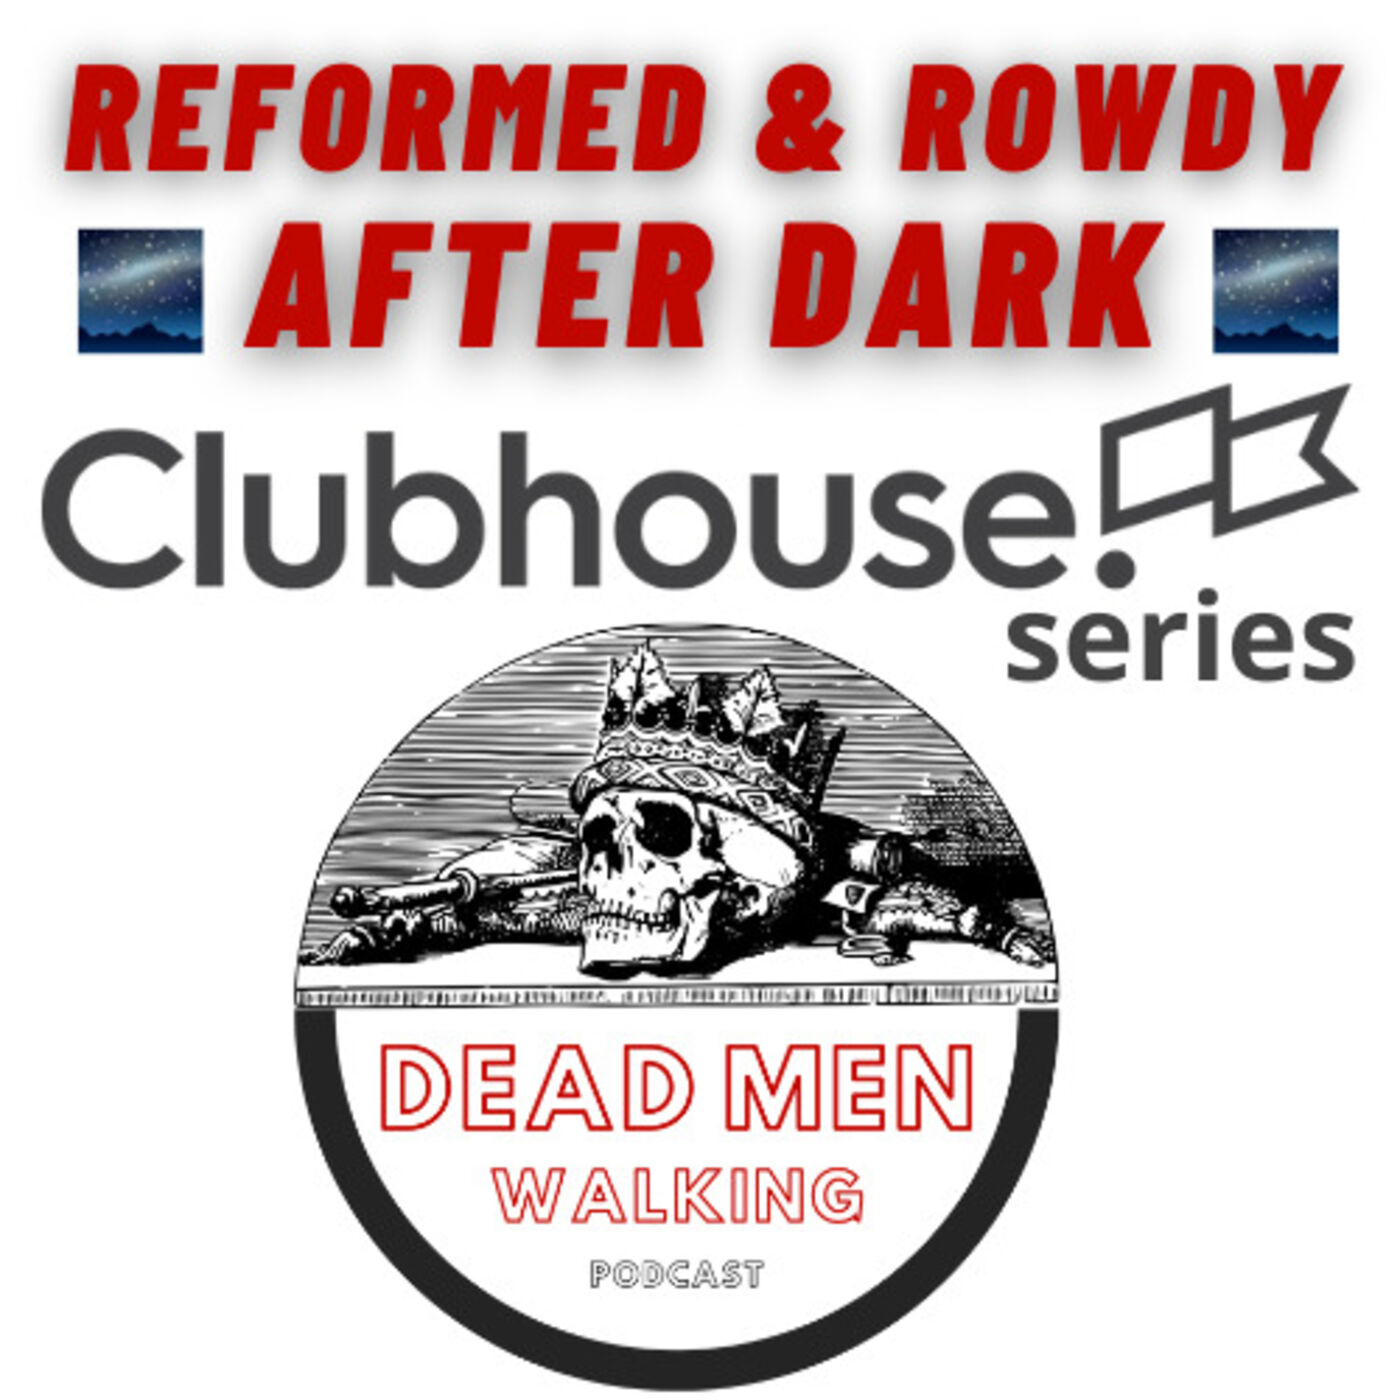 Dead Men Walking Podcast: Clubhouse Series: Favorite Theologians & Questions from an unbeliever